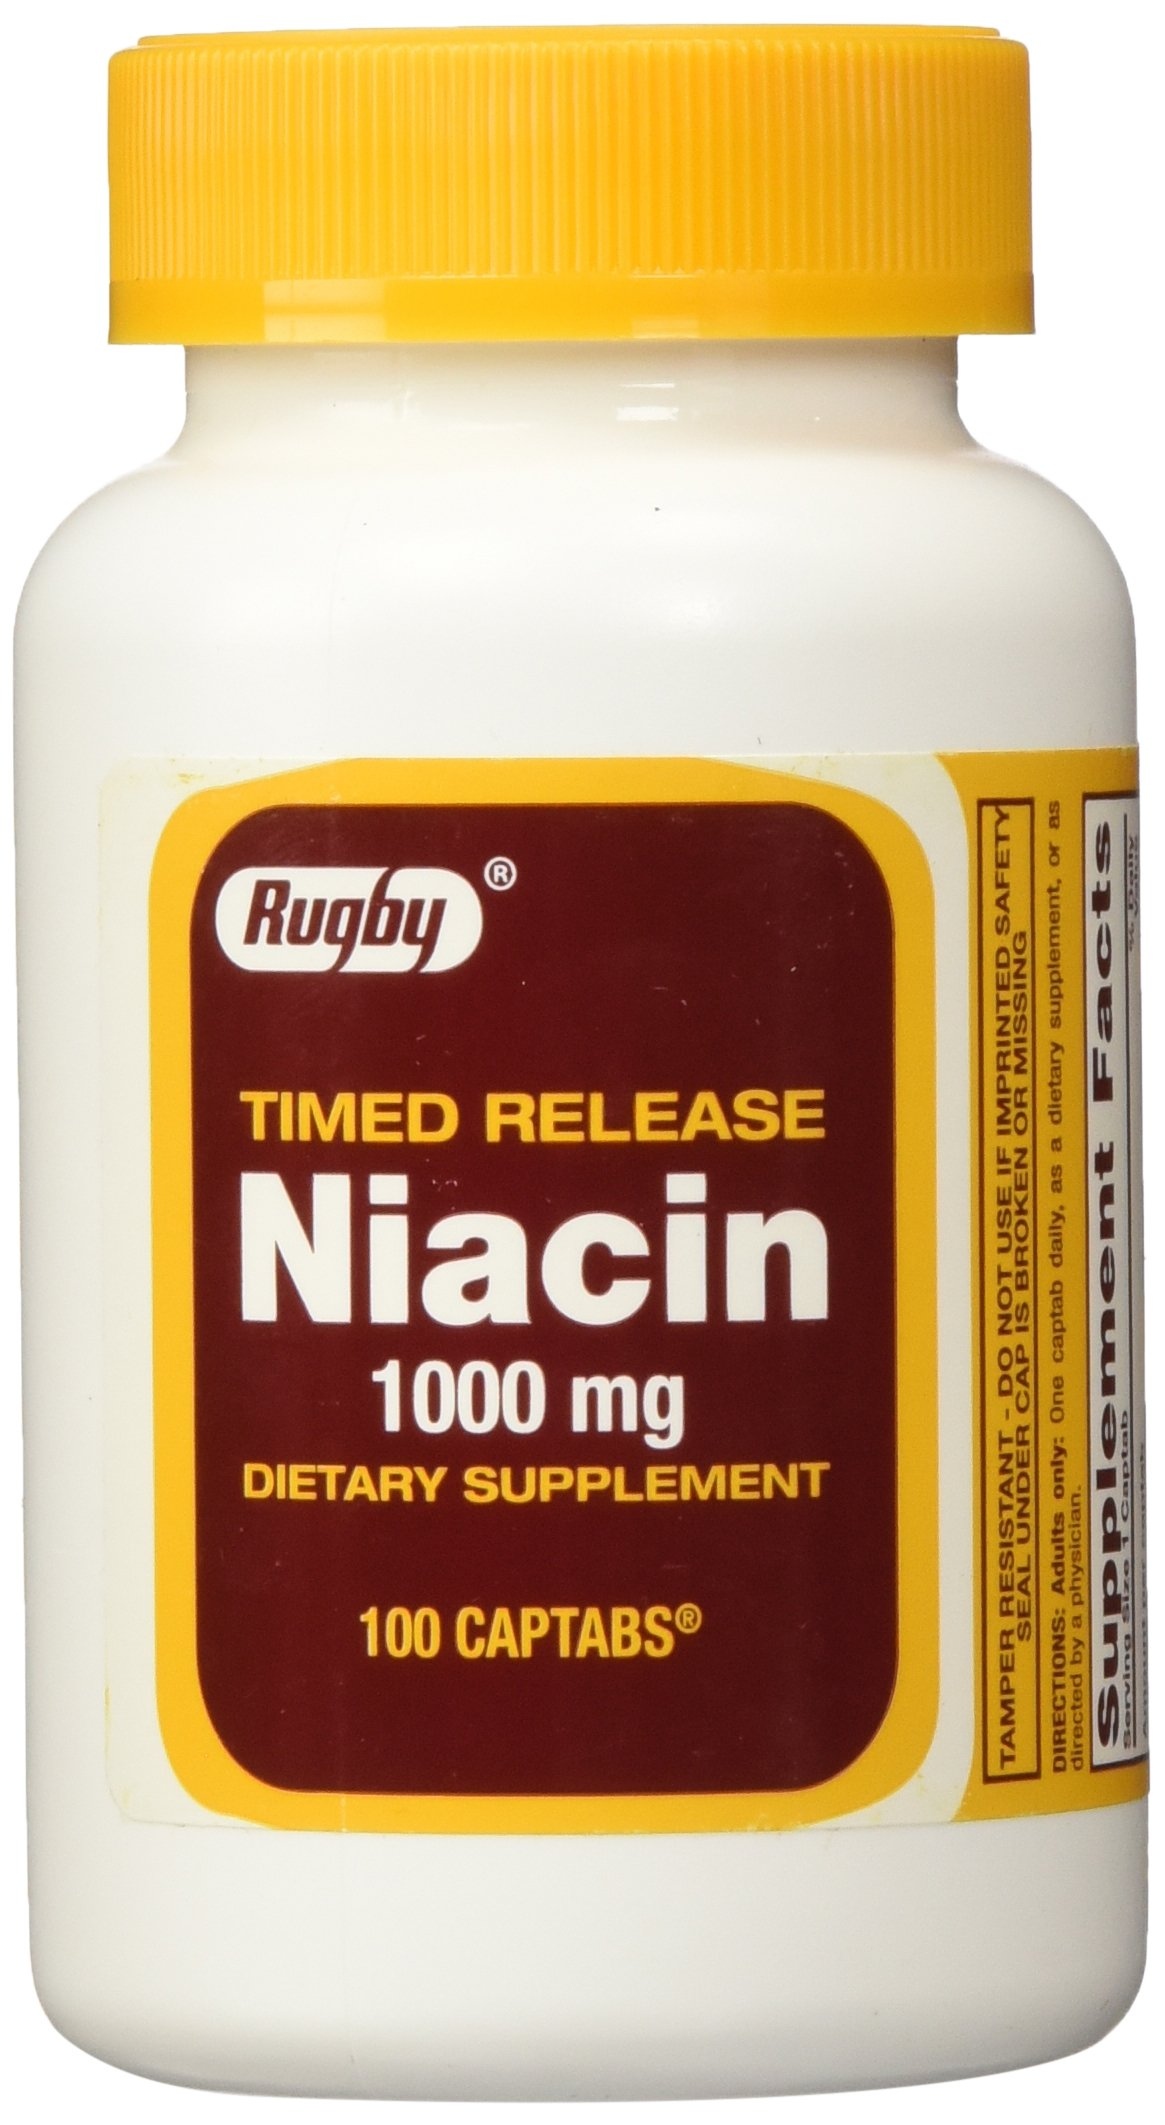 Rugby Niacin Timed Release 1000mg Tablets - 3 Pack (3) by Rugby